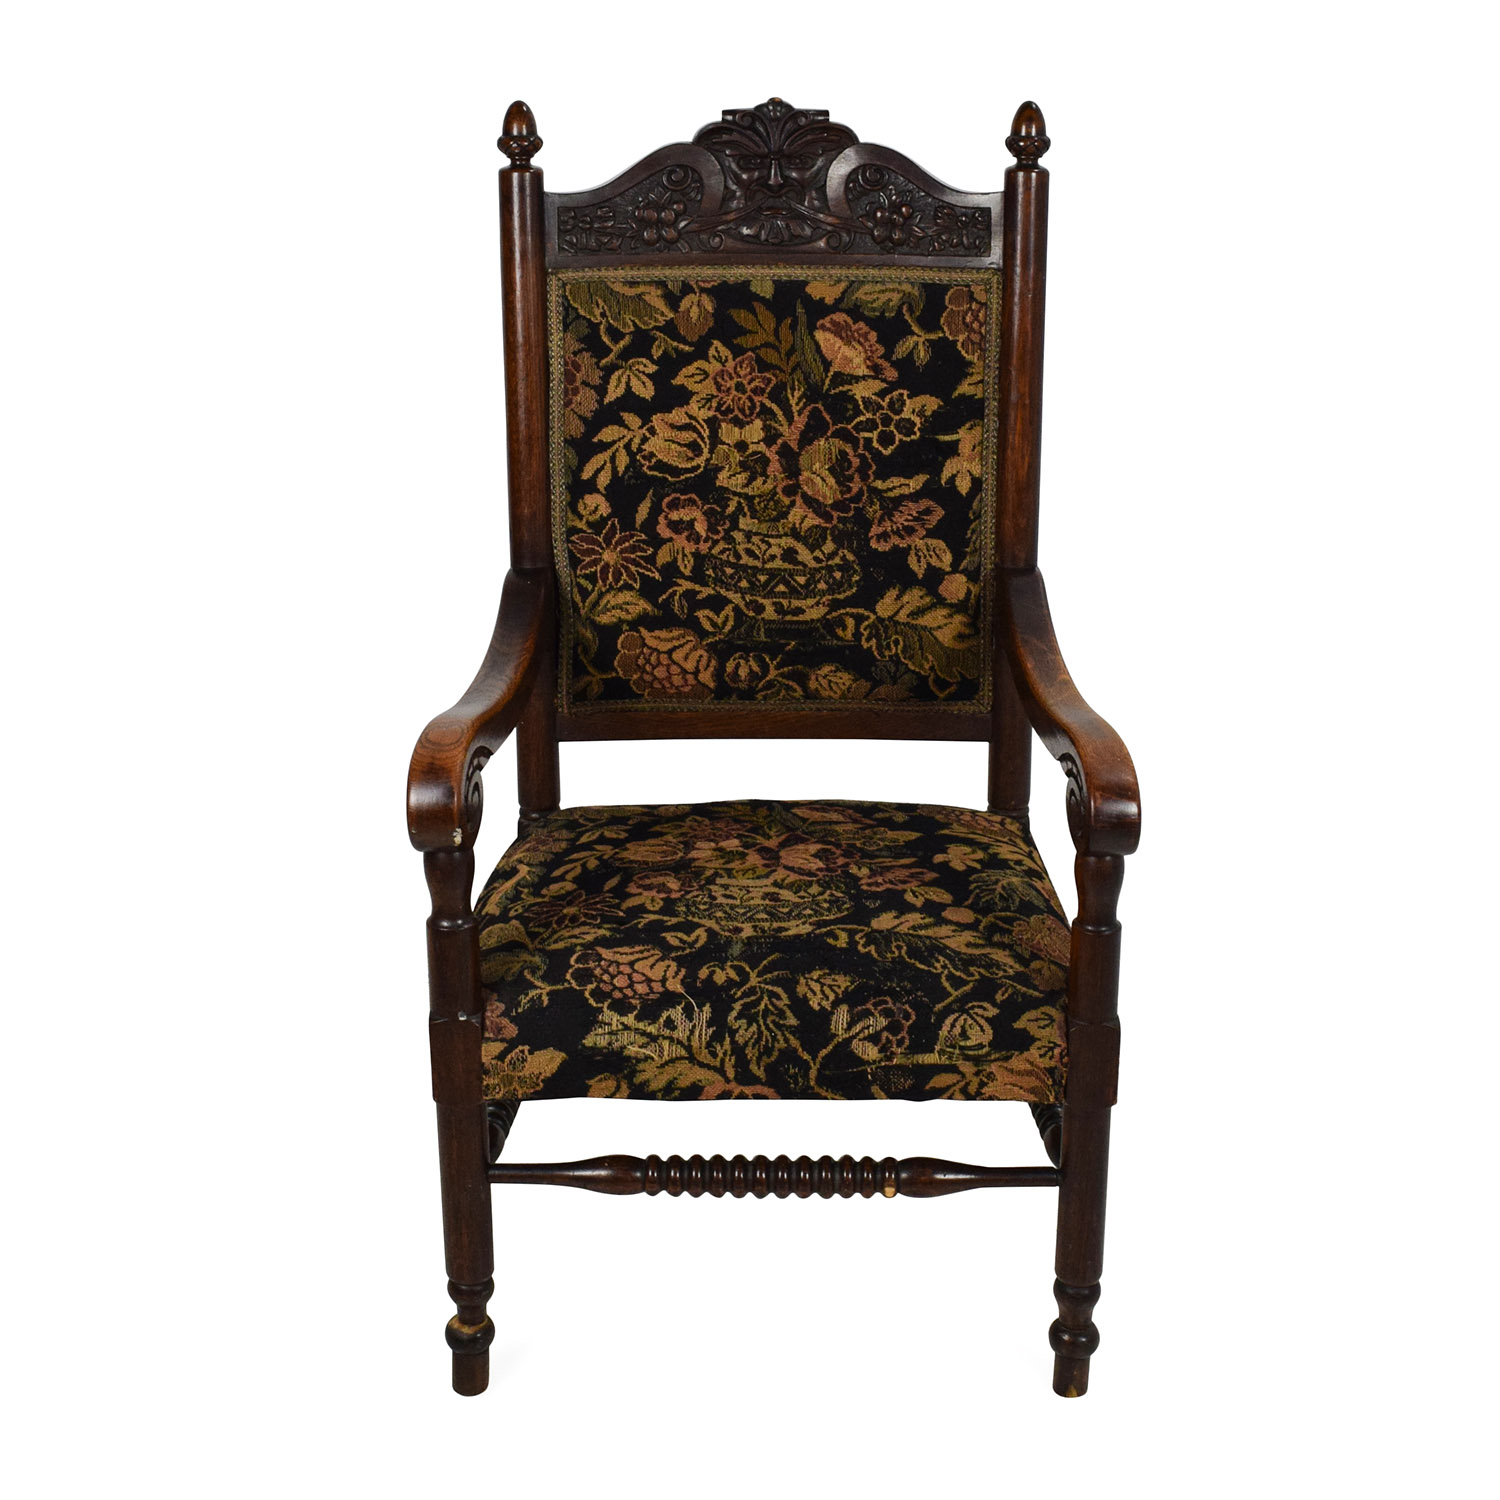 Upholstered Rocking Chair 84 Off Maison Corbeil Canada Maison Corbeil Canada